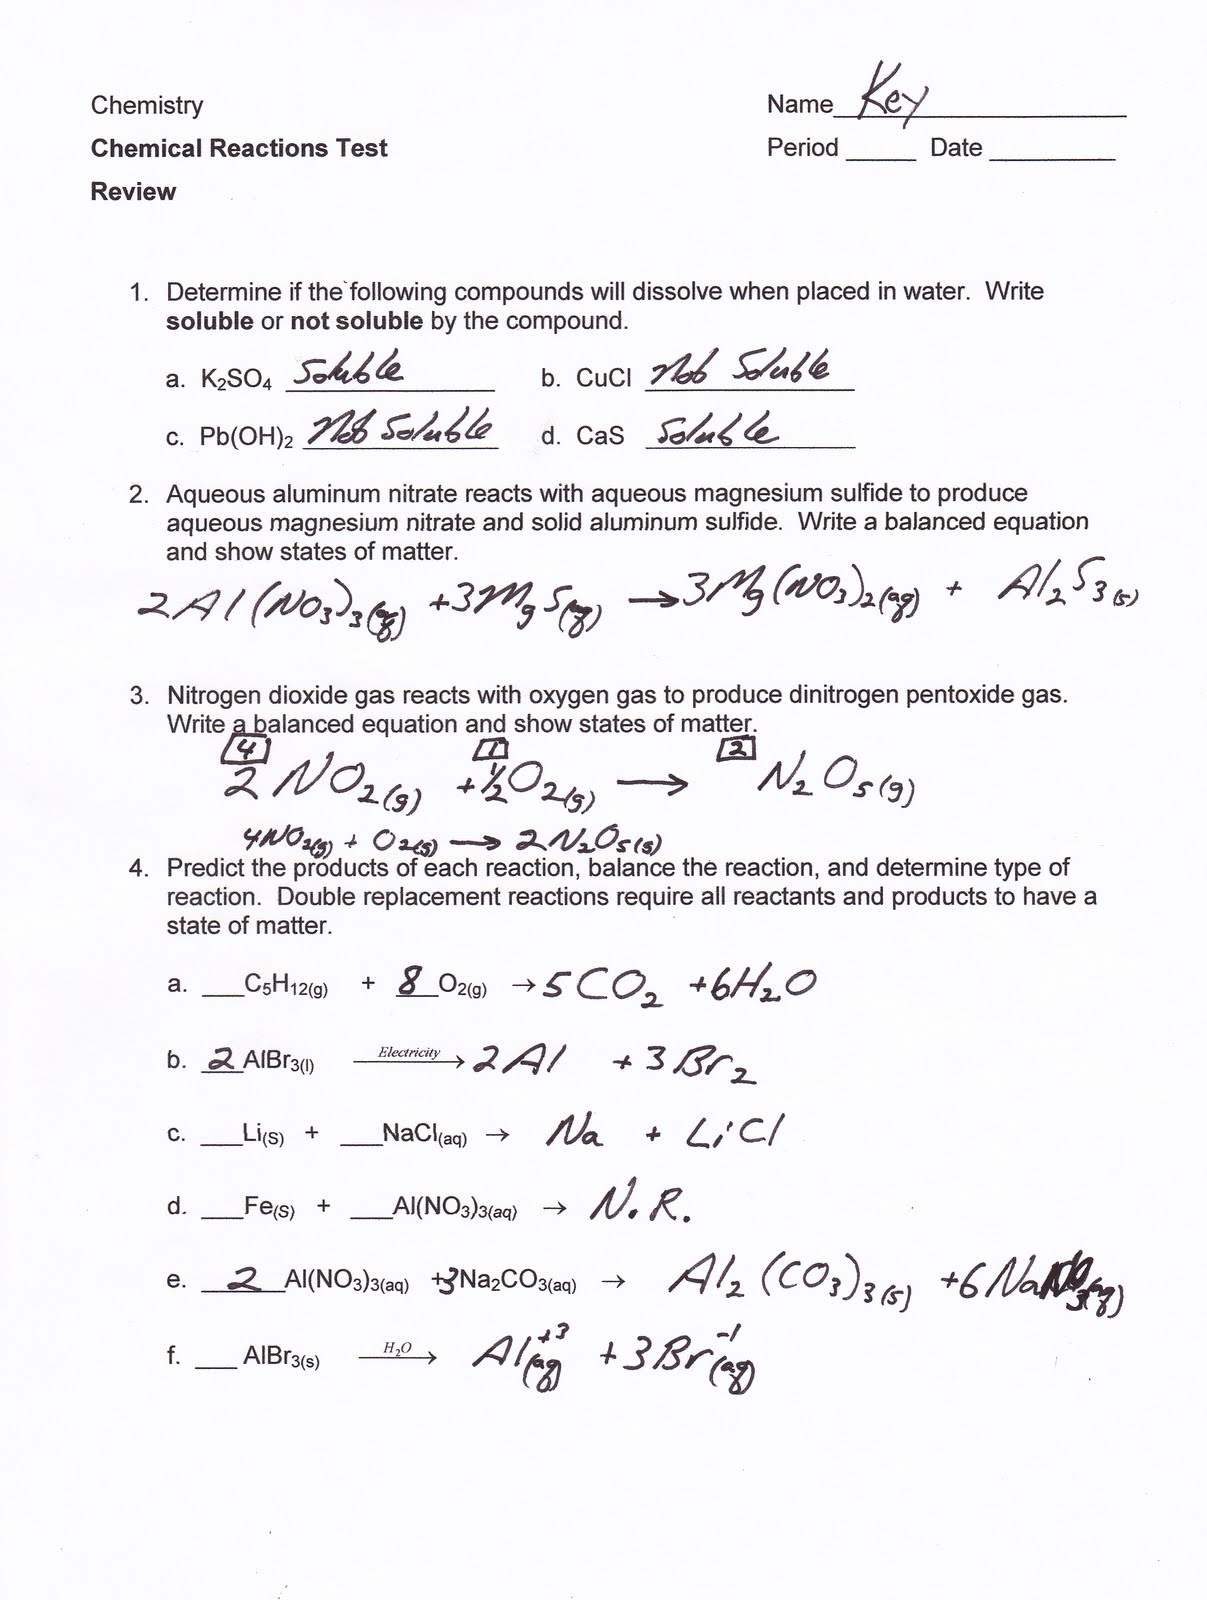 Printables Chemistry Review Worksheet Mywcct Thousands